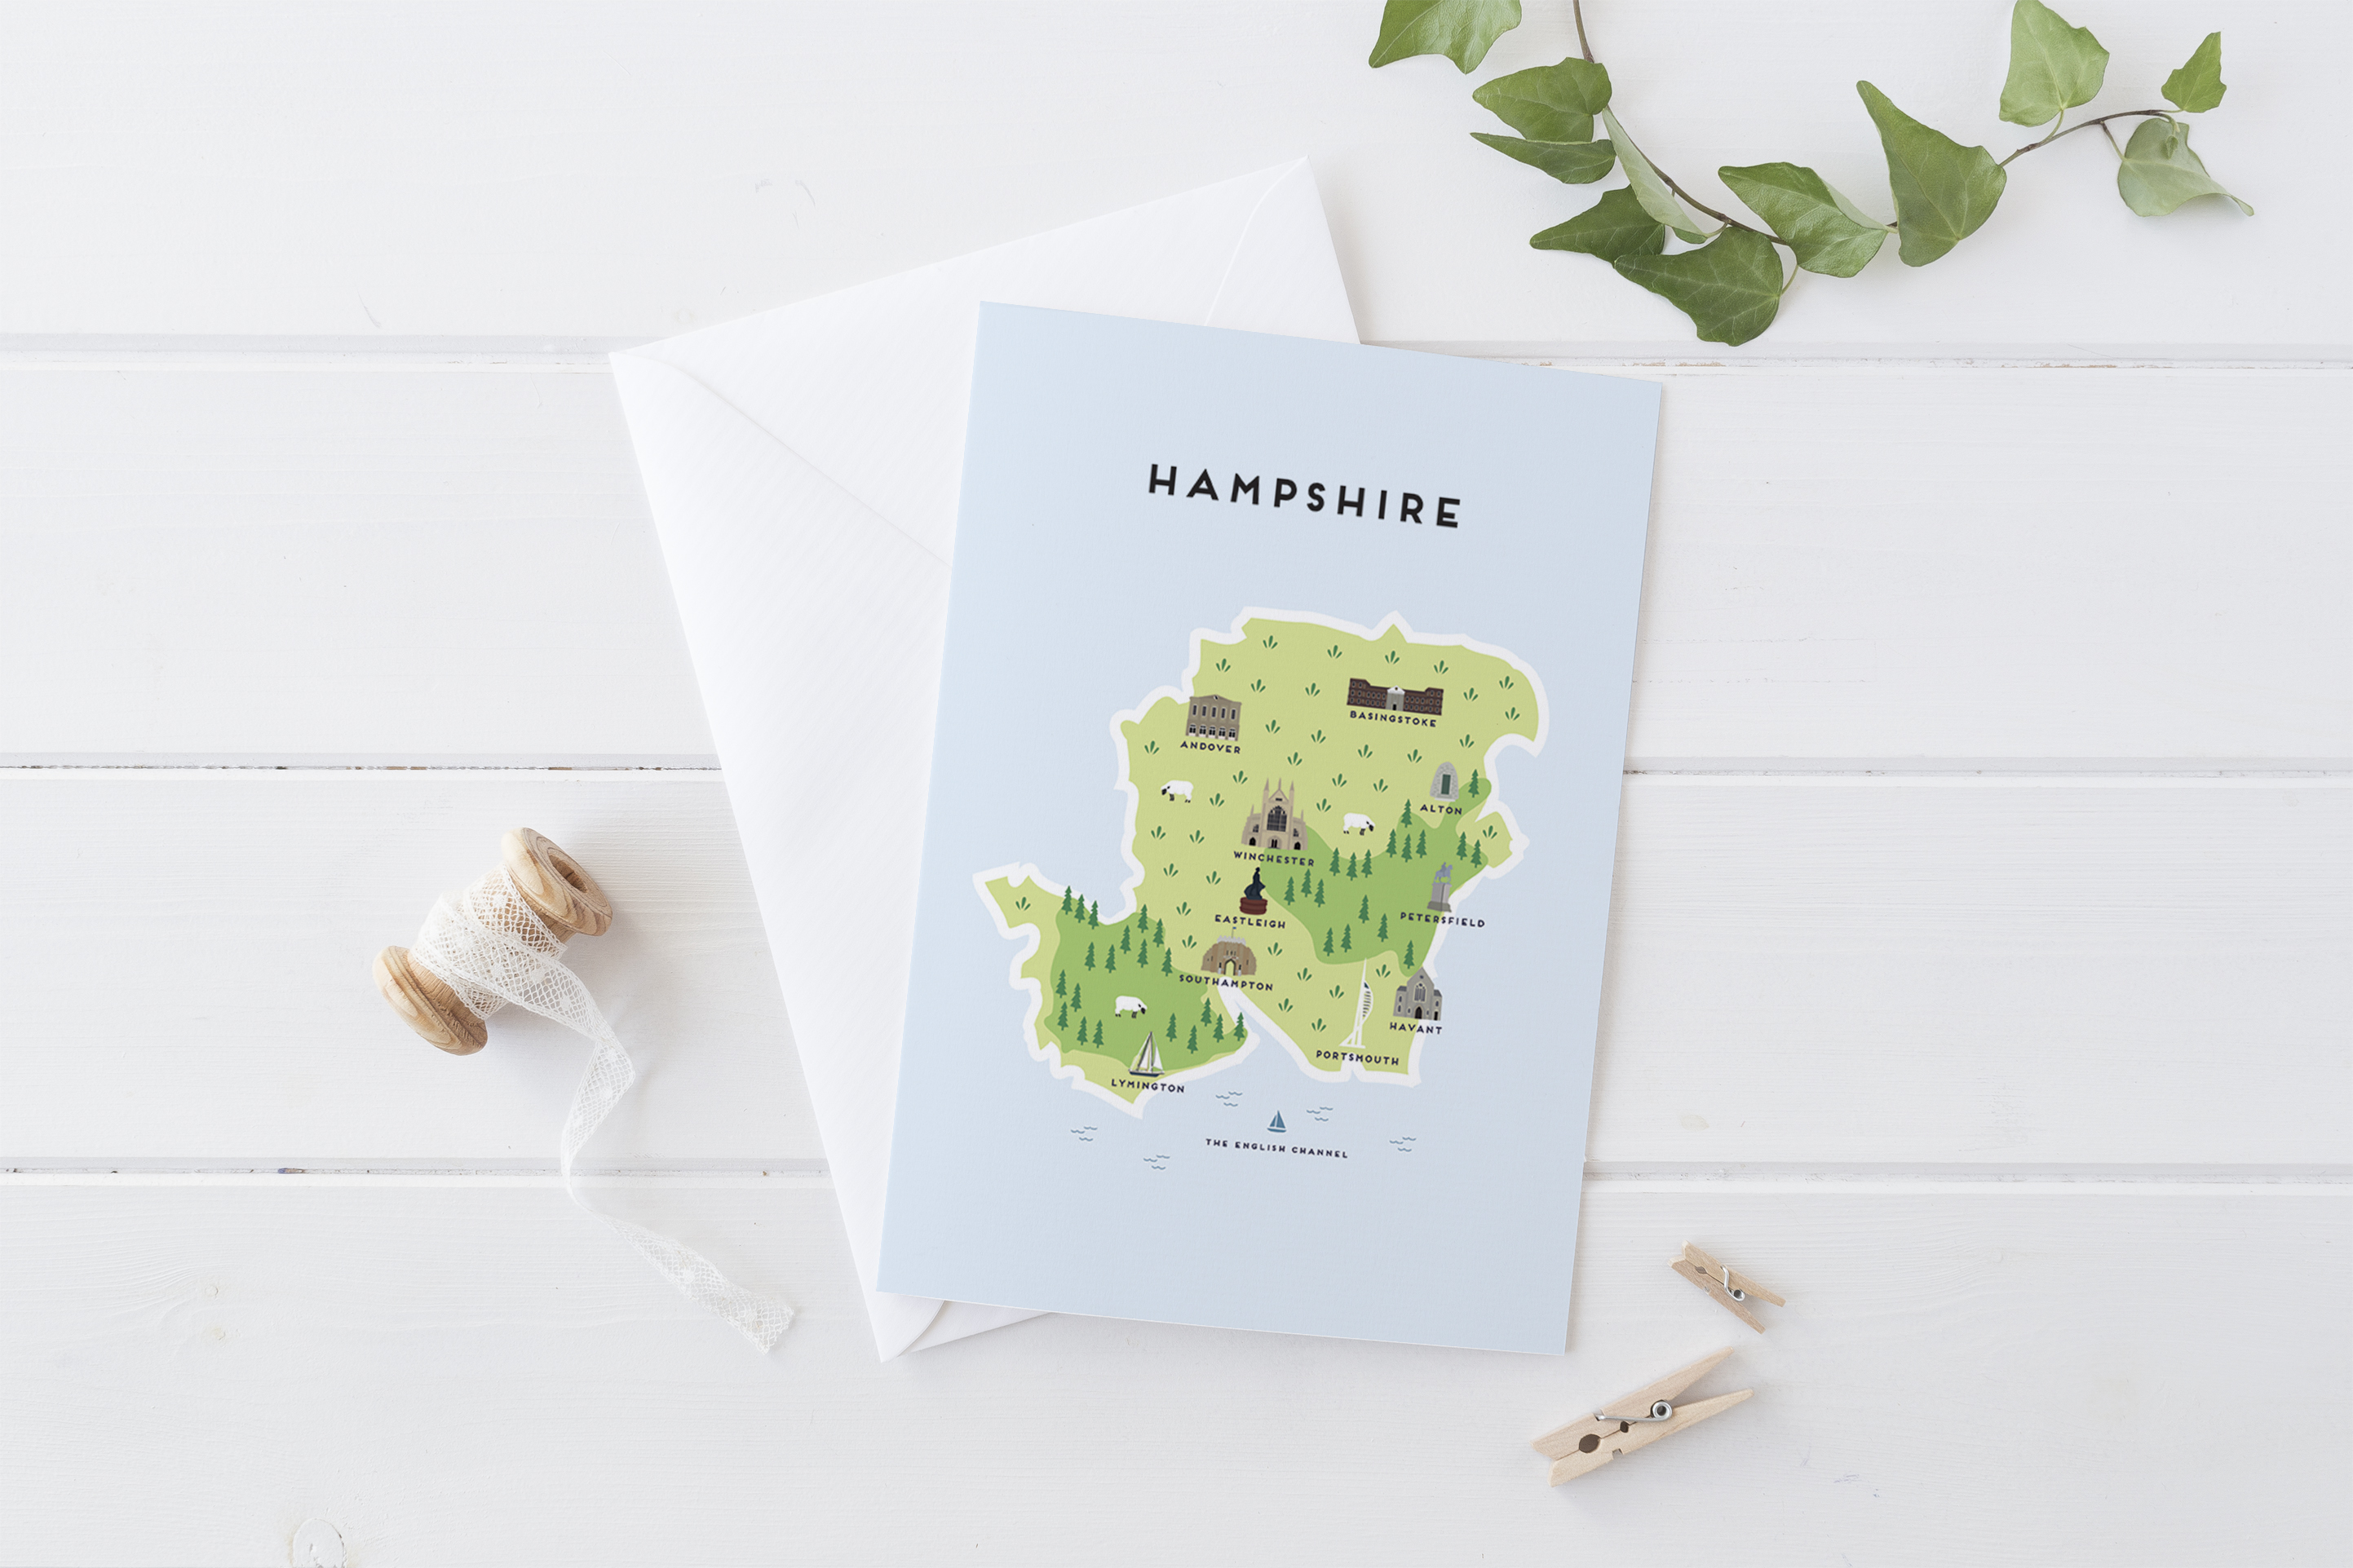 Place in Print Pepper Pot Studios Hampshire Illustrated Map Greetings Card